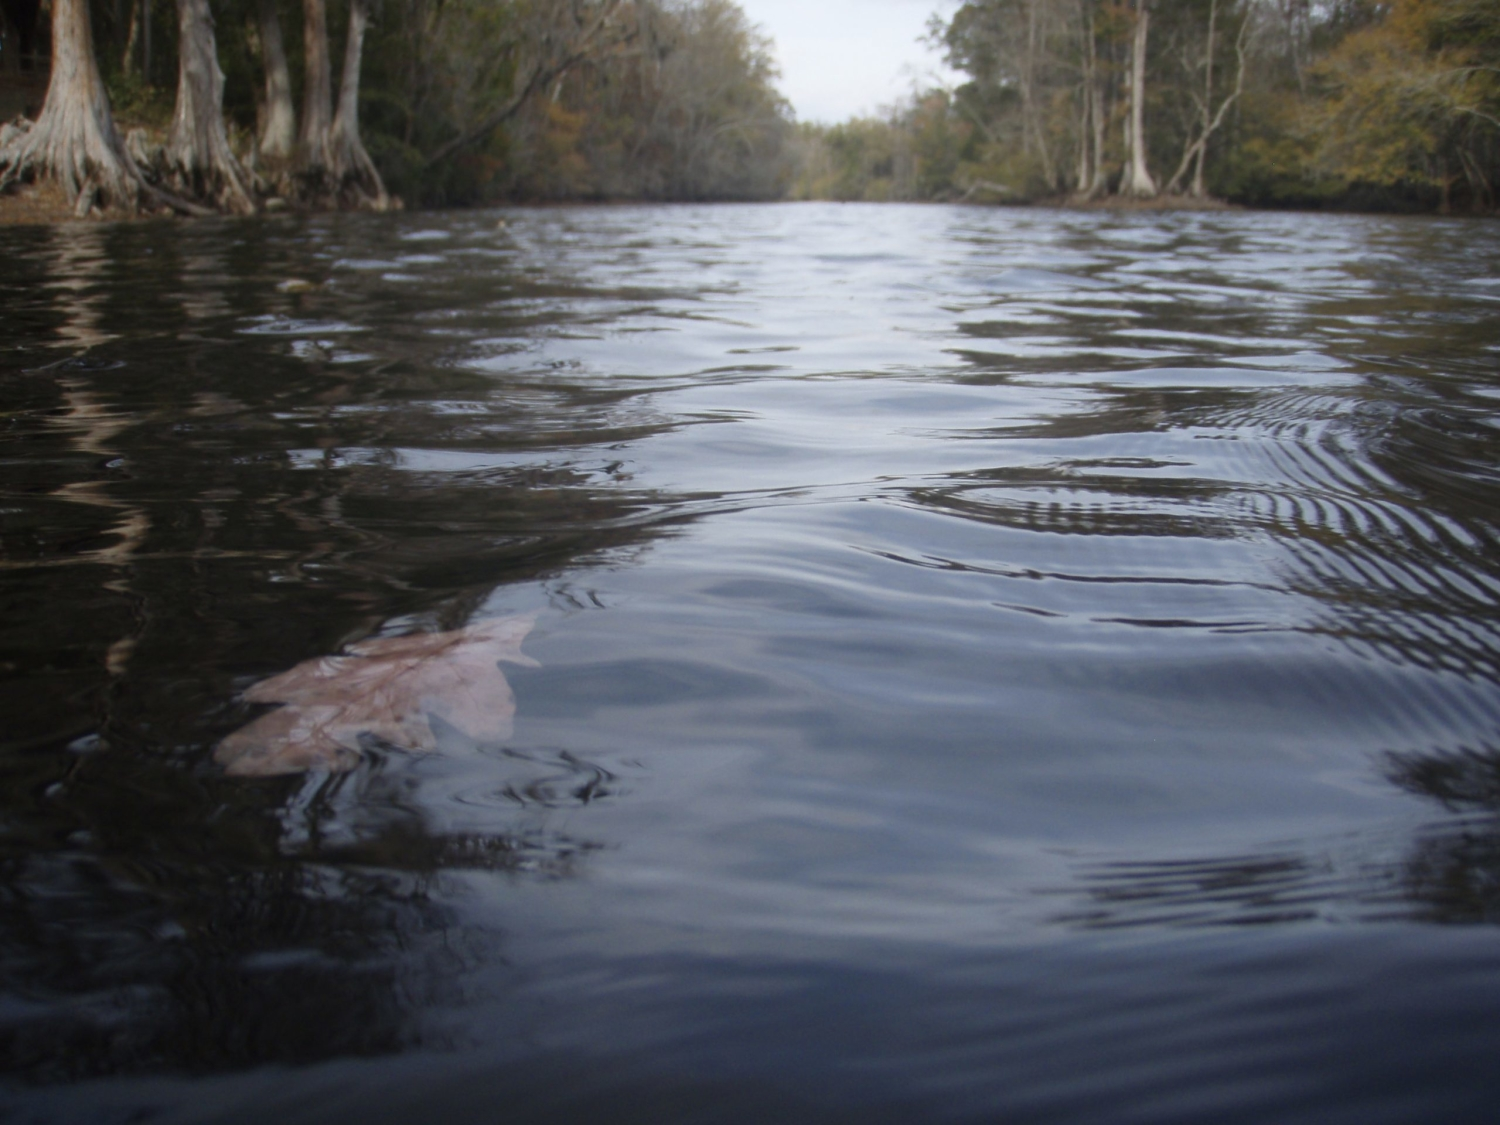 Lumbee River - N.C. Tribes Faced Obstacles to Atlantic Coast Pipeline Water Planning, Study Shows - Forestry and Environmental Resources NC State University